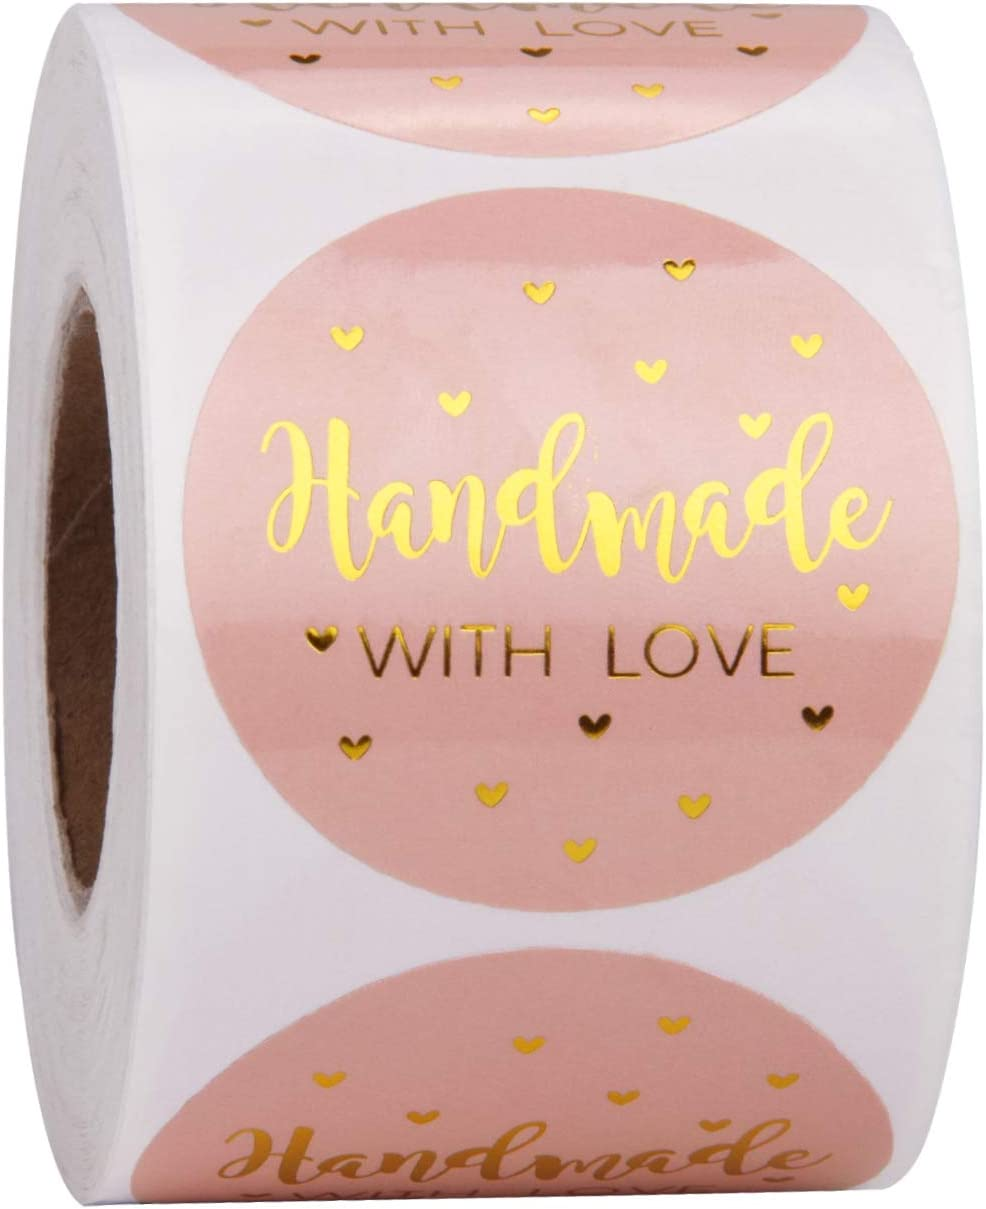 WRAPAHOLIC Handmade Business Gift Sticker - Pink with Gold Foil Sticker for Shopping Small Shop Handmade - 2 x 2 Inch 500 Total Labels